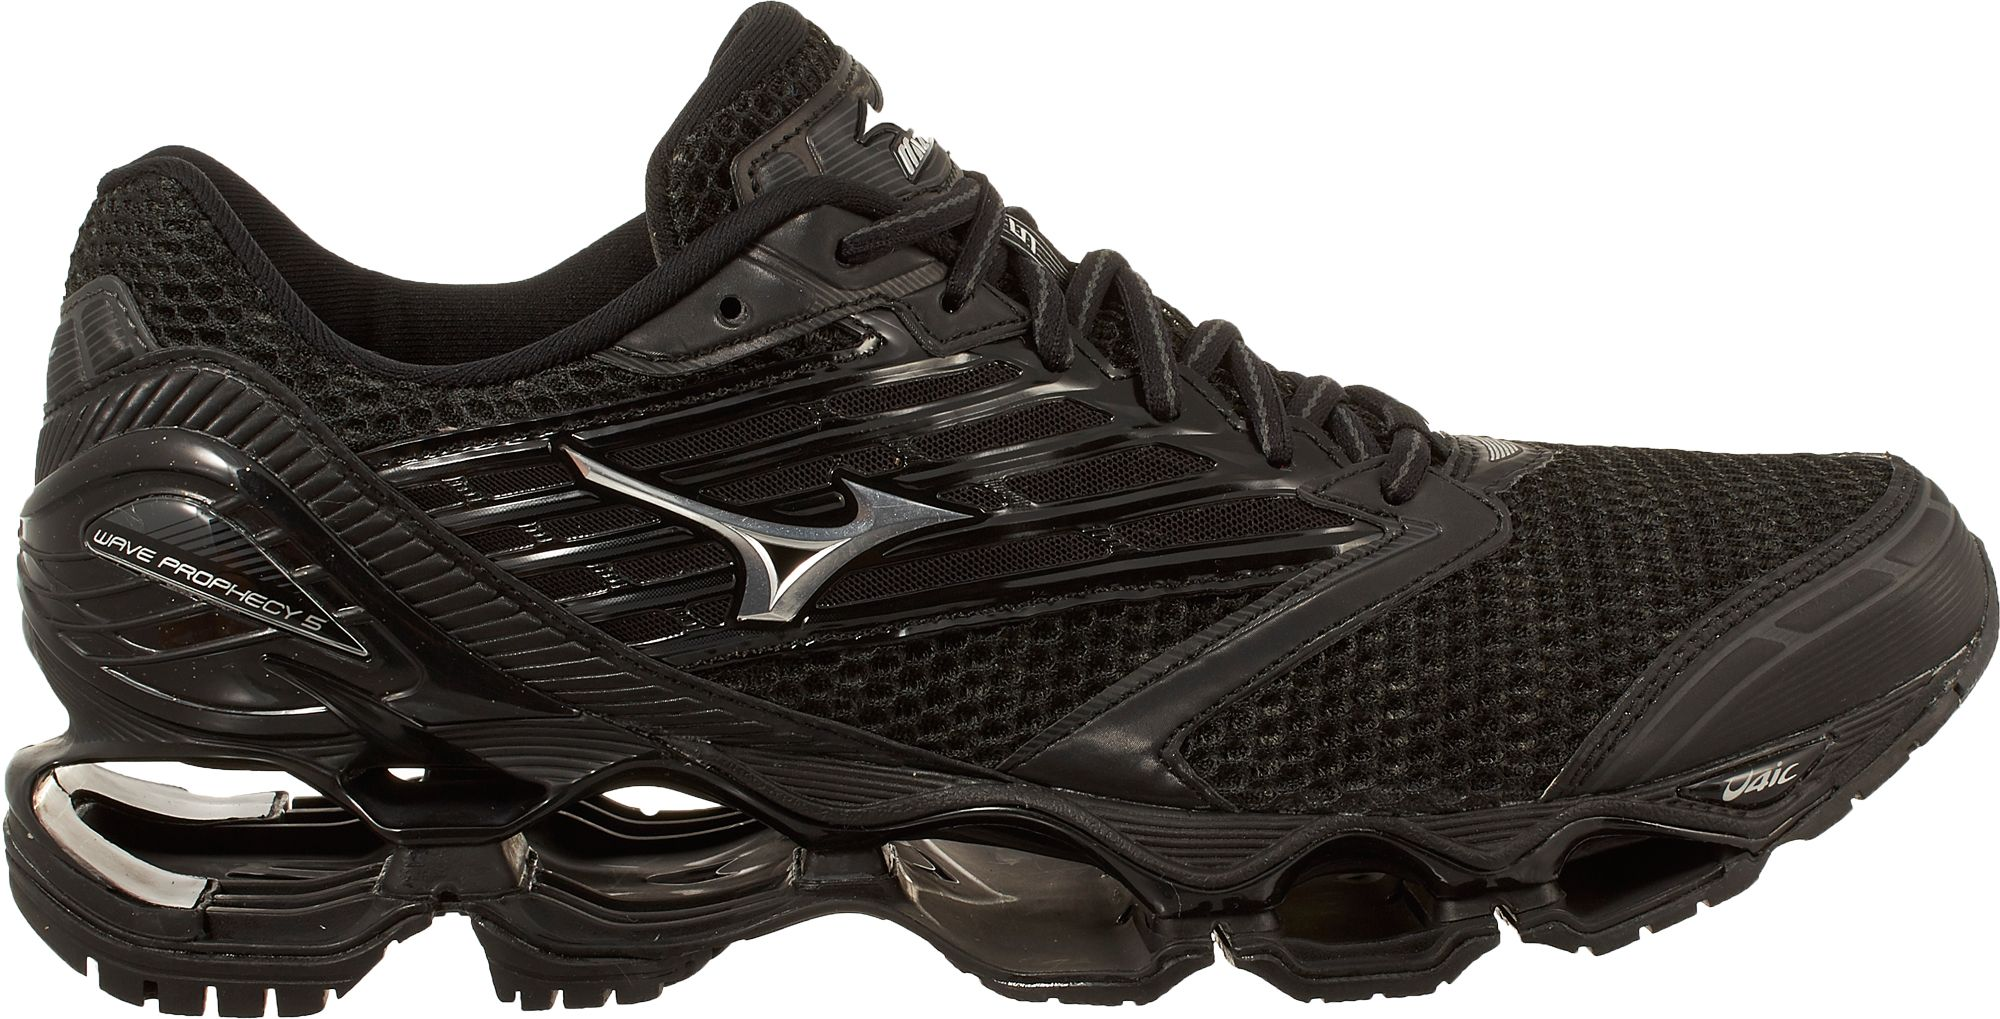 Mizuno Volleyball Shoes Price In India